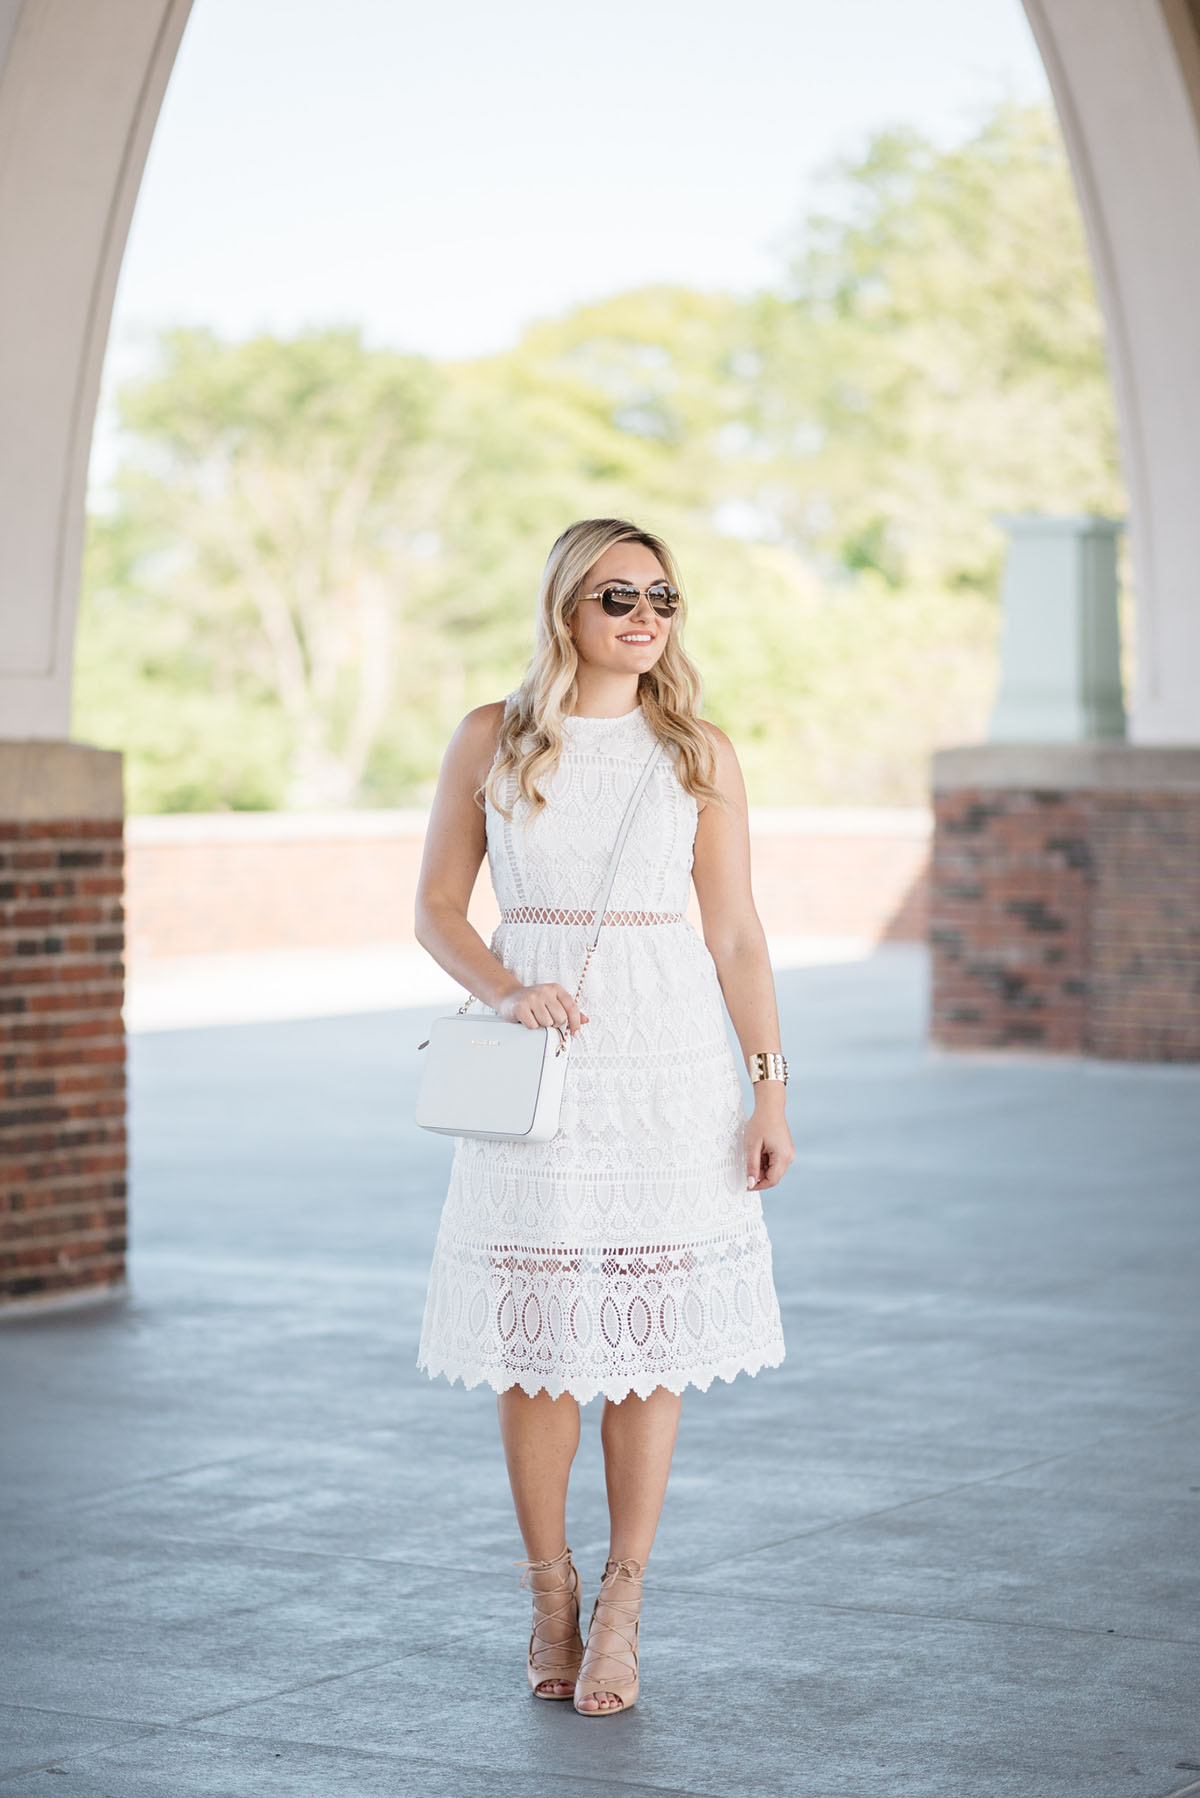 Bows & Sequins wearing a white lace dress, white crossbody bag, and tan lace-up heels in Chicago.